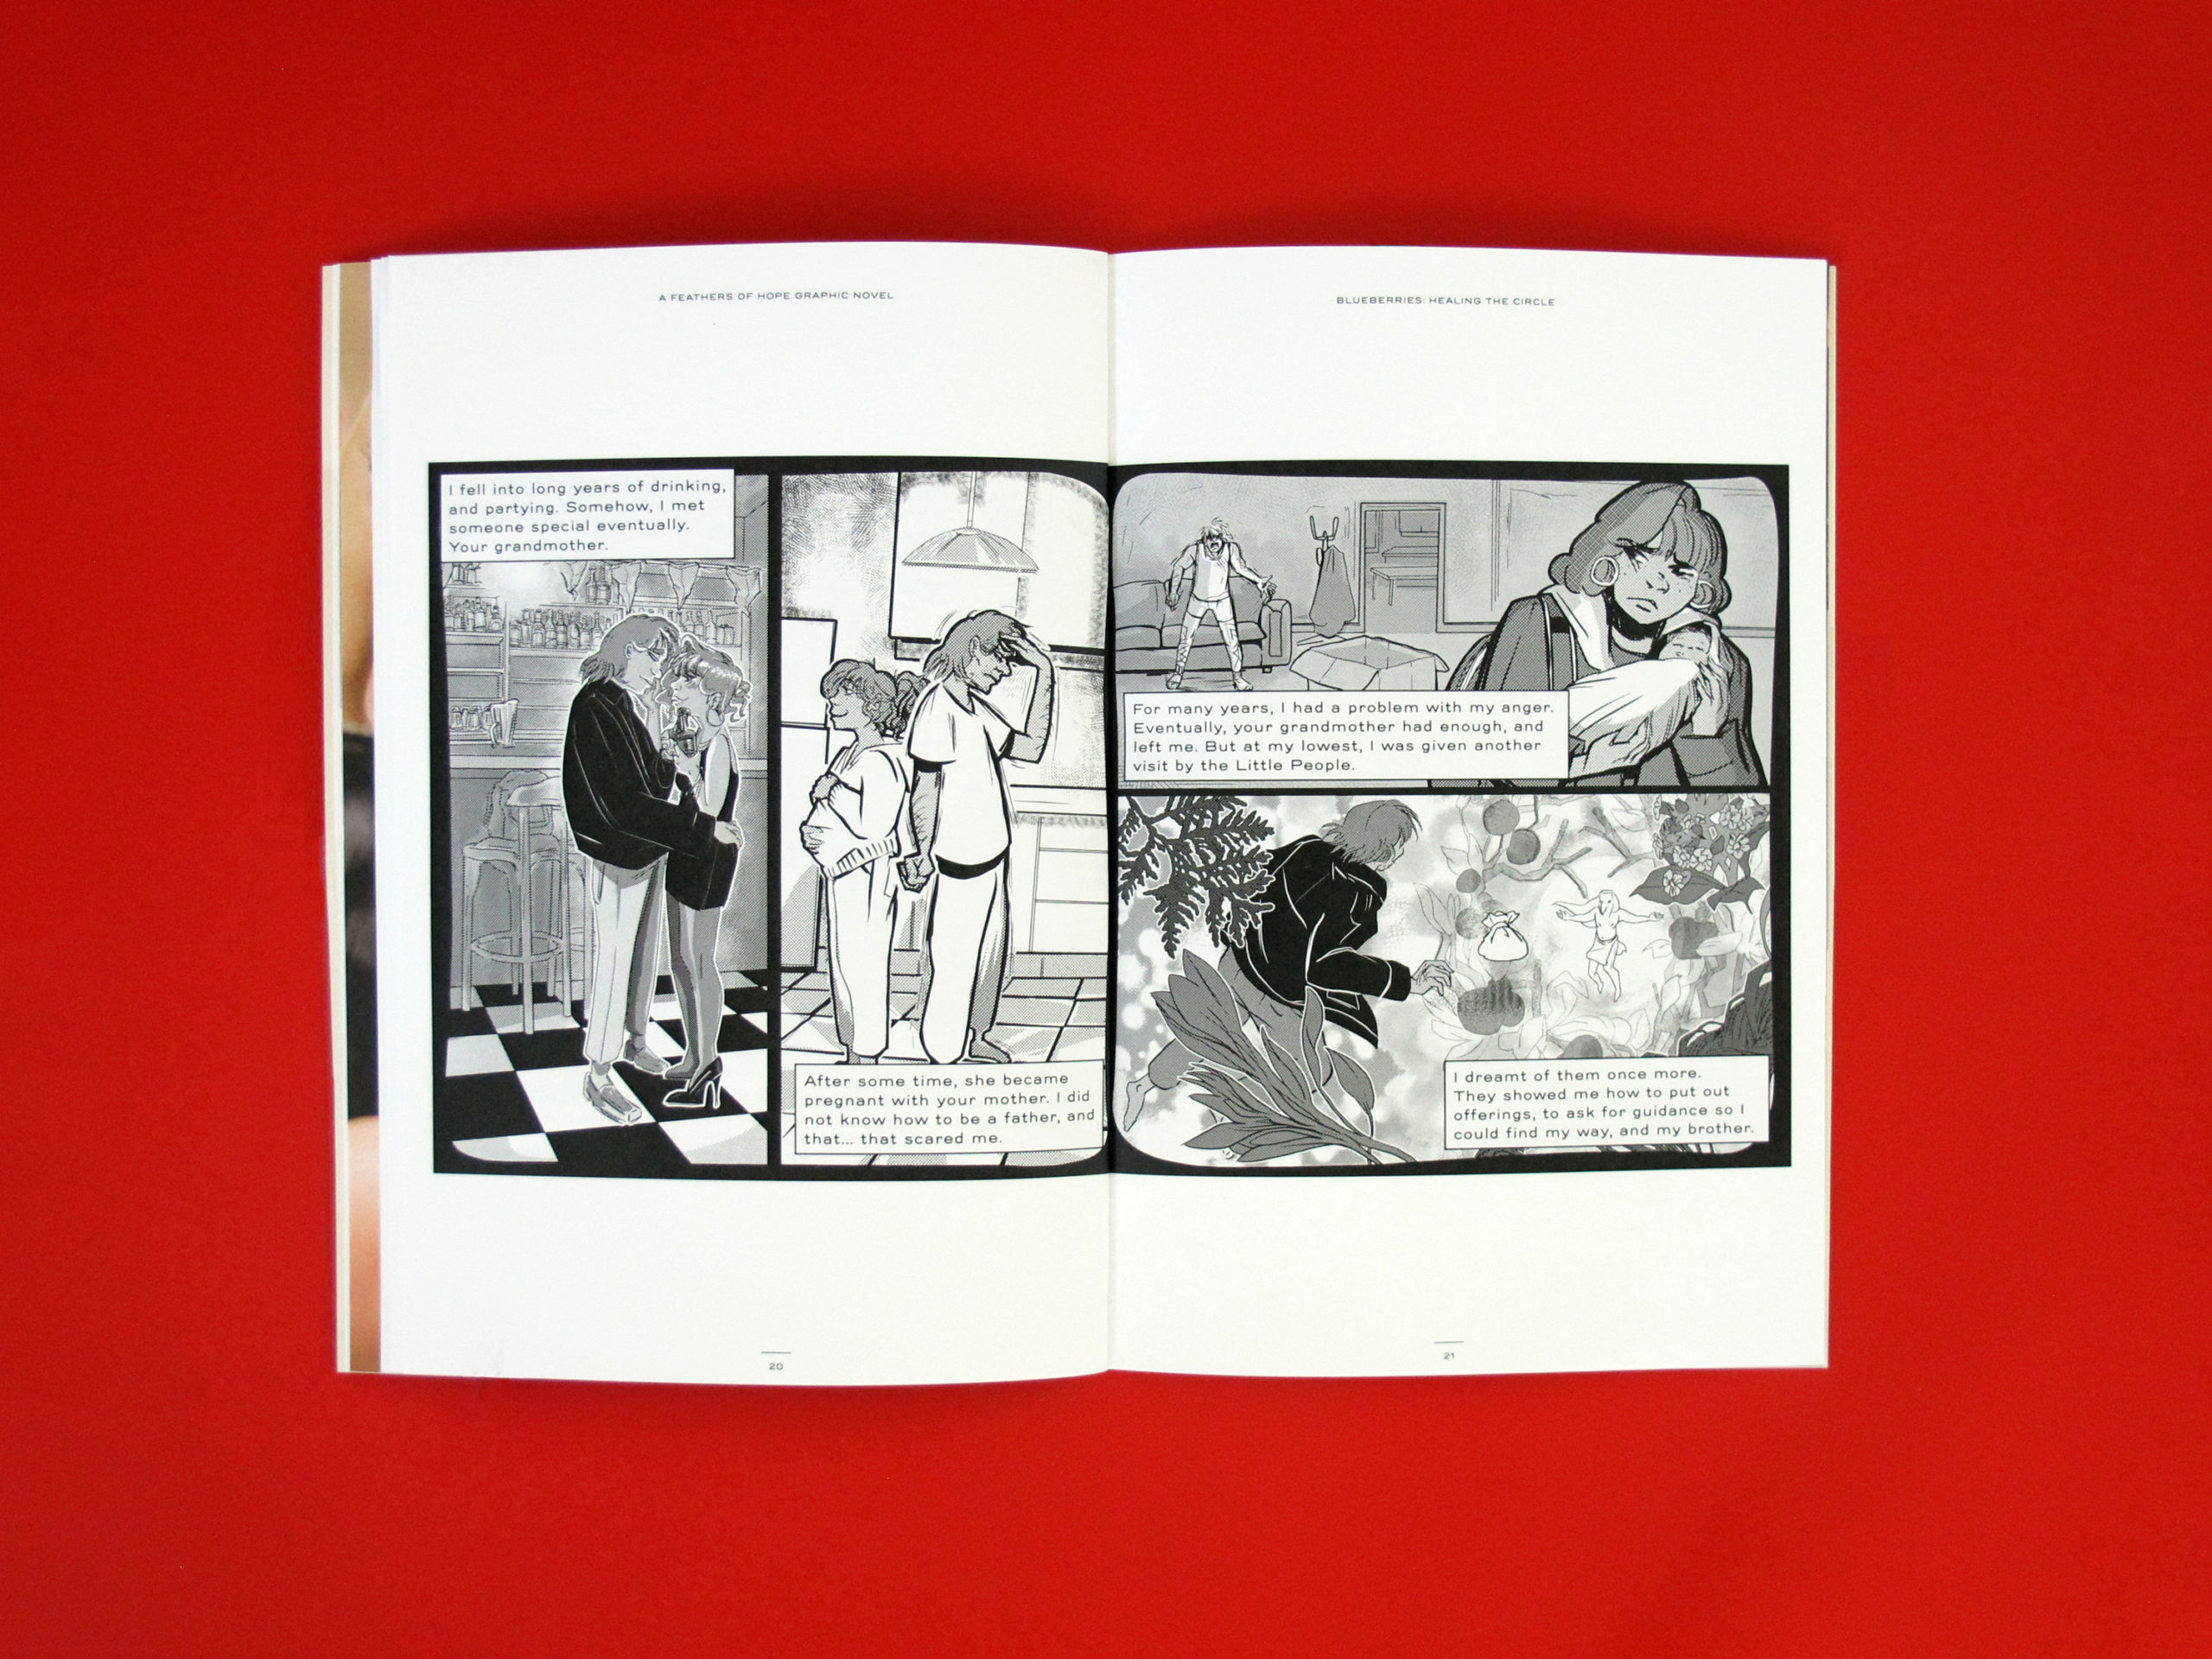 Photo of a spread of the graphic novel Blueberries: Healing the Circle. It is a series of black and white panels from pages 20-21.